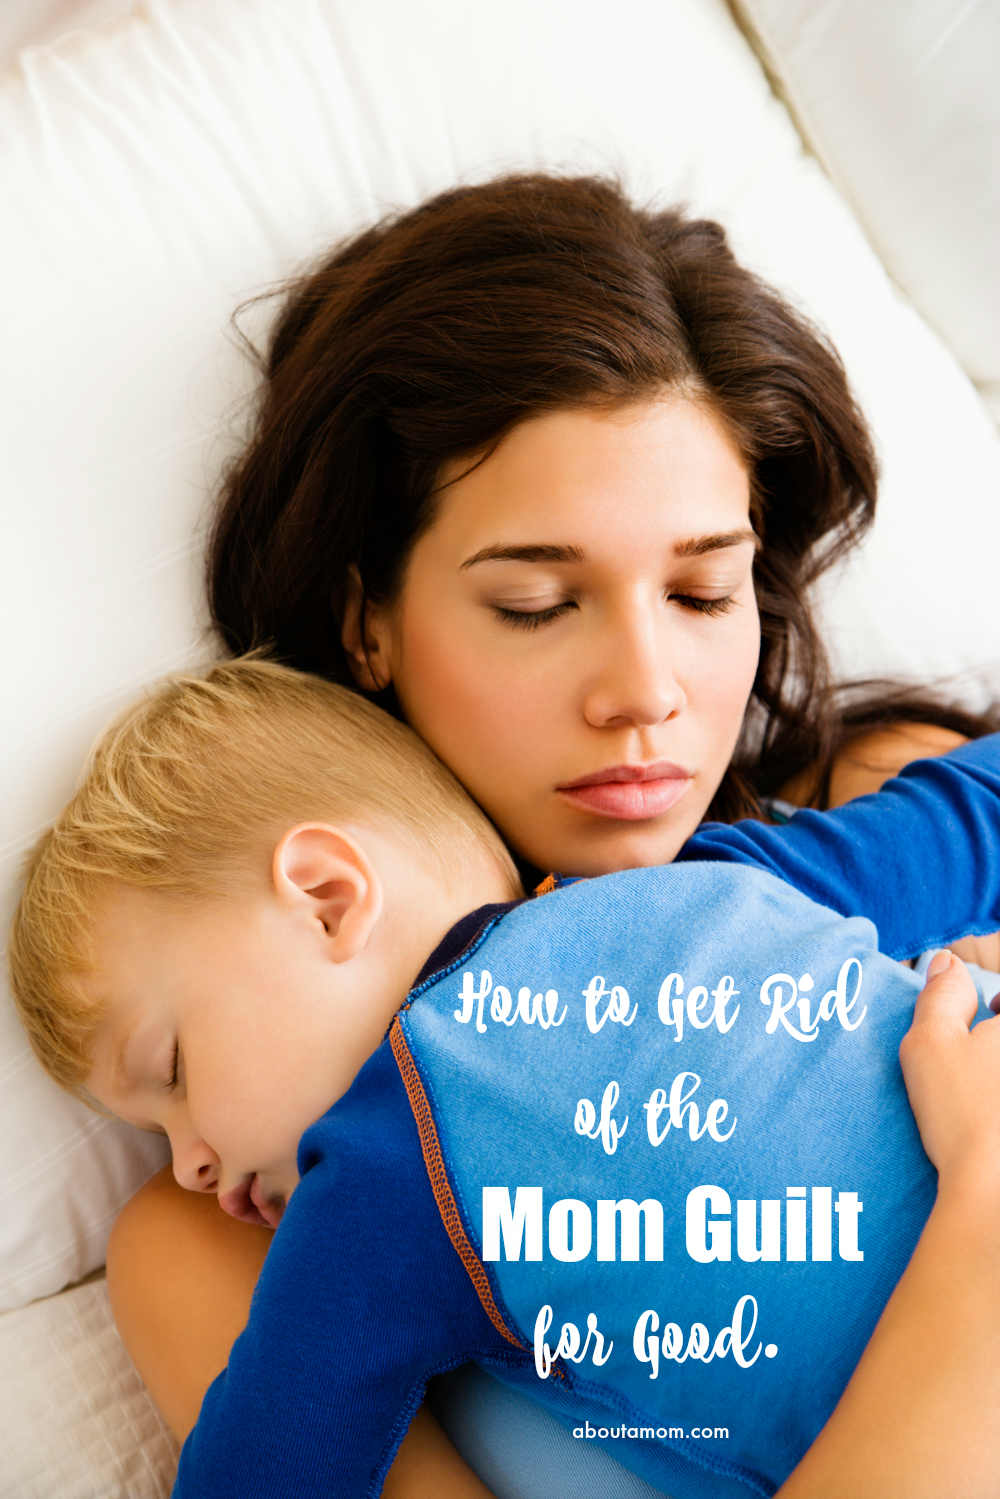 Moms are always ridiculing themselves for everything. Dinner wasn't good enough. Maybe you spend too much money at the grocery store. Here's how to give yourself a break and let go of the mom guilt for good.